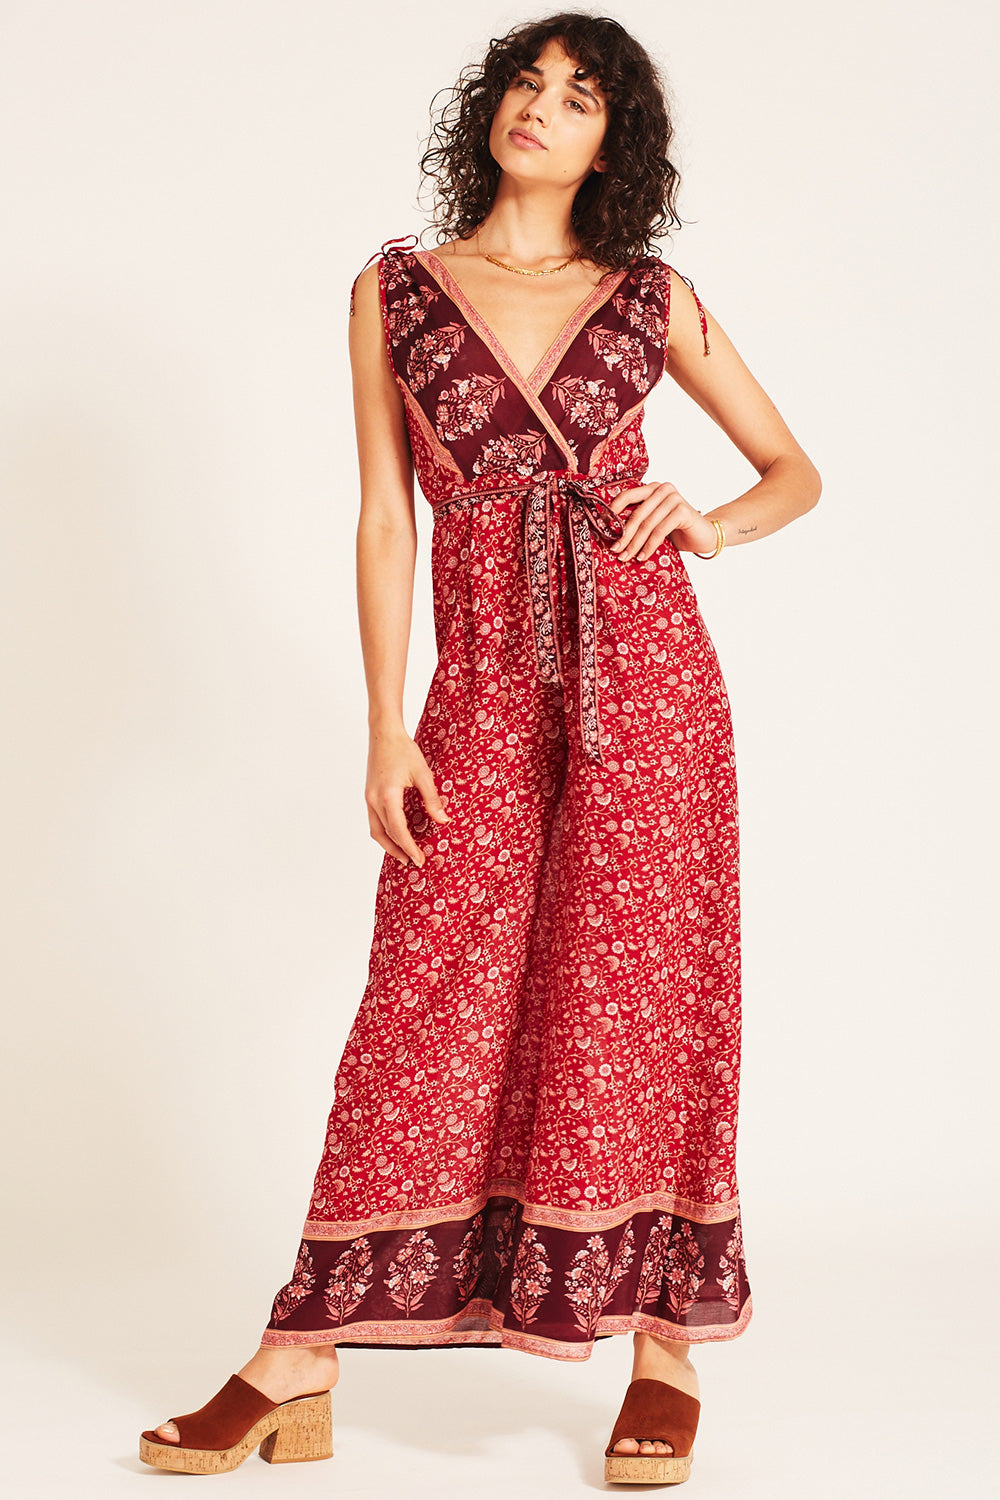 Wisteria Jumpsuit in Crimson